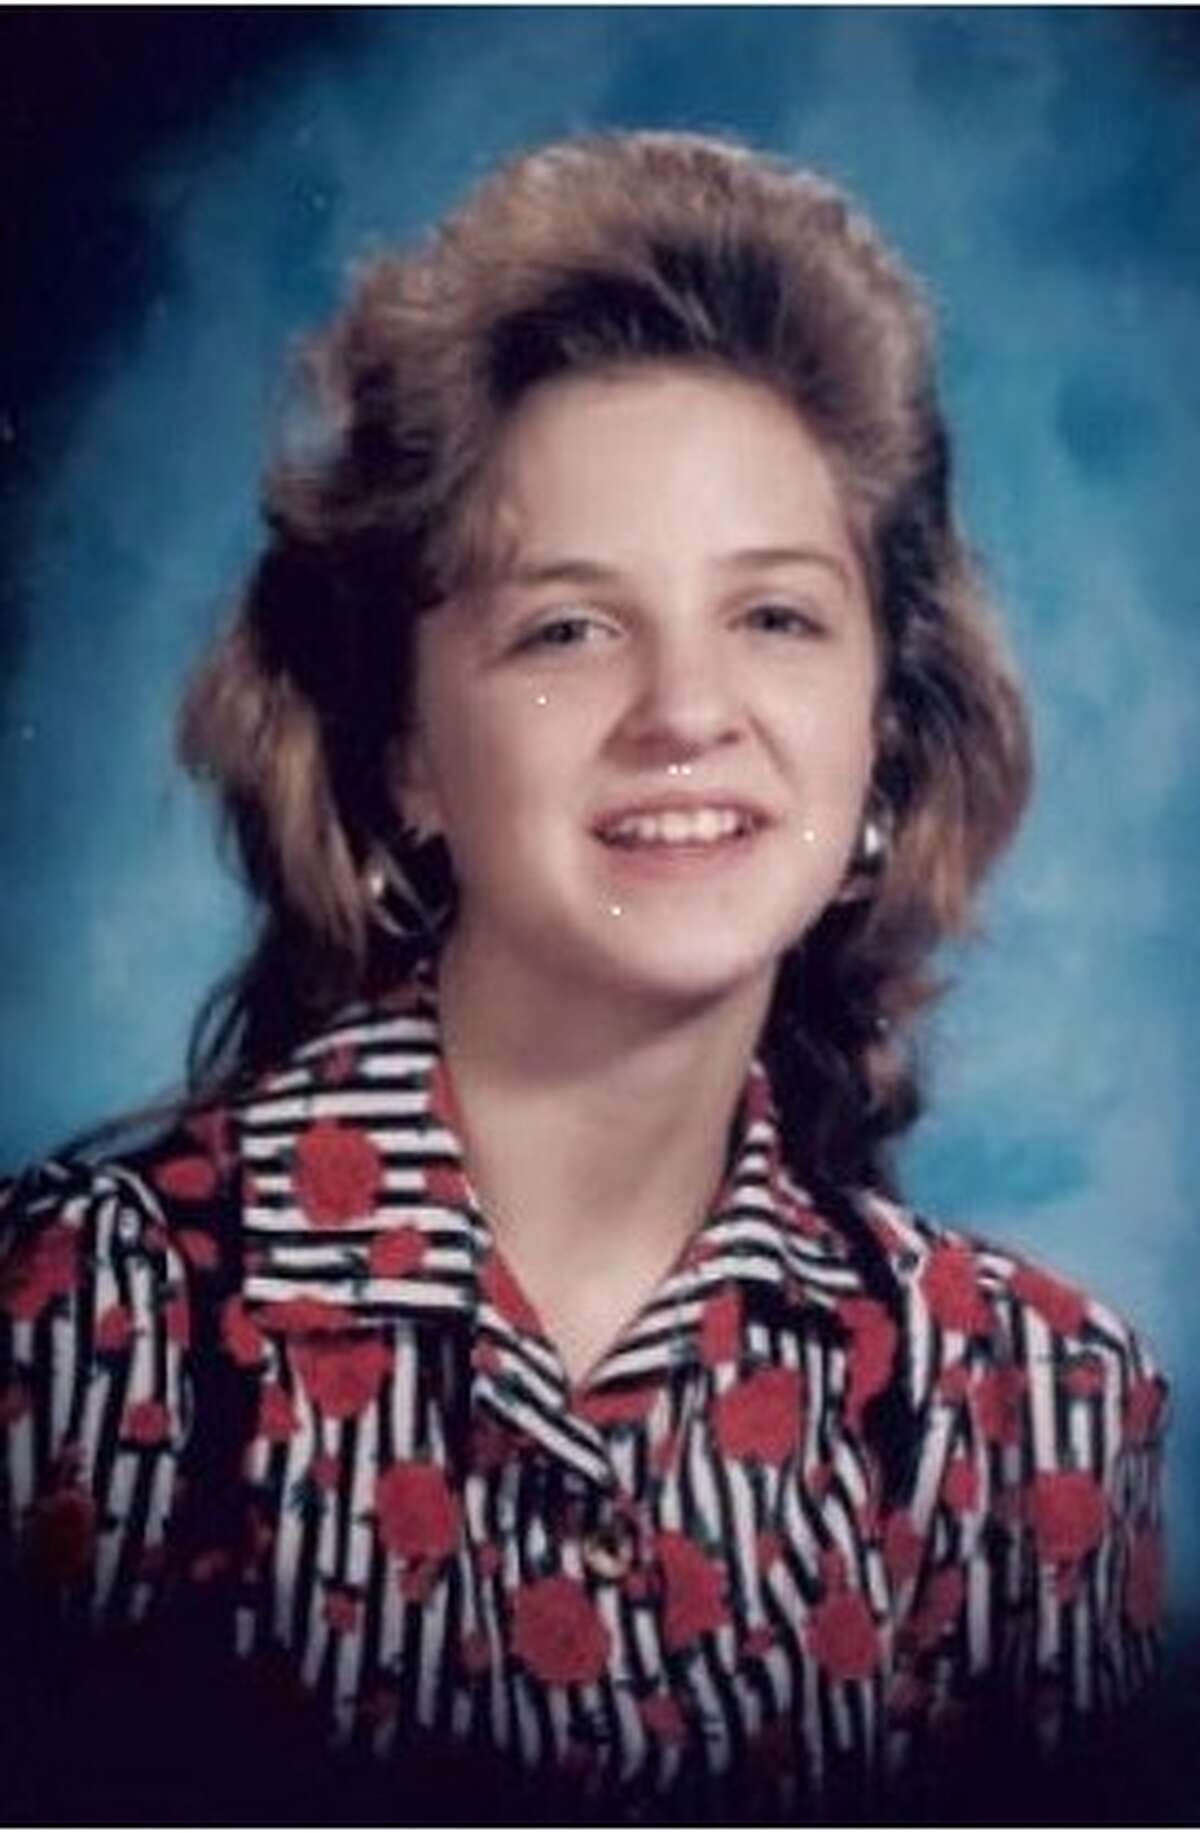 Schenectady Police seek the public's help in cracking the cold case murder of Suzanne Nauman, a 17-year-old streetwalker found dead in a golf course 21 years ago. (Photo: State Police).